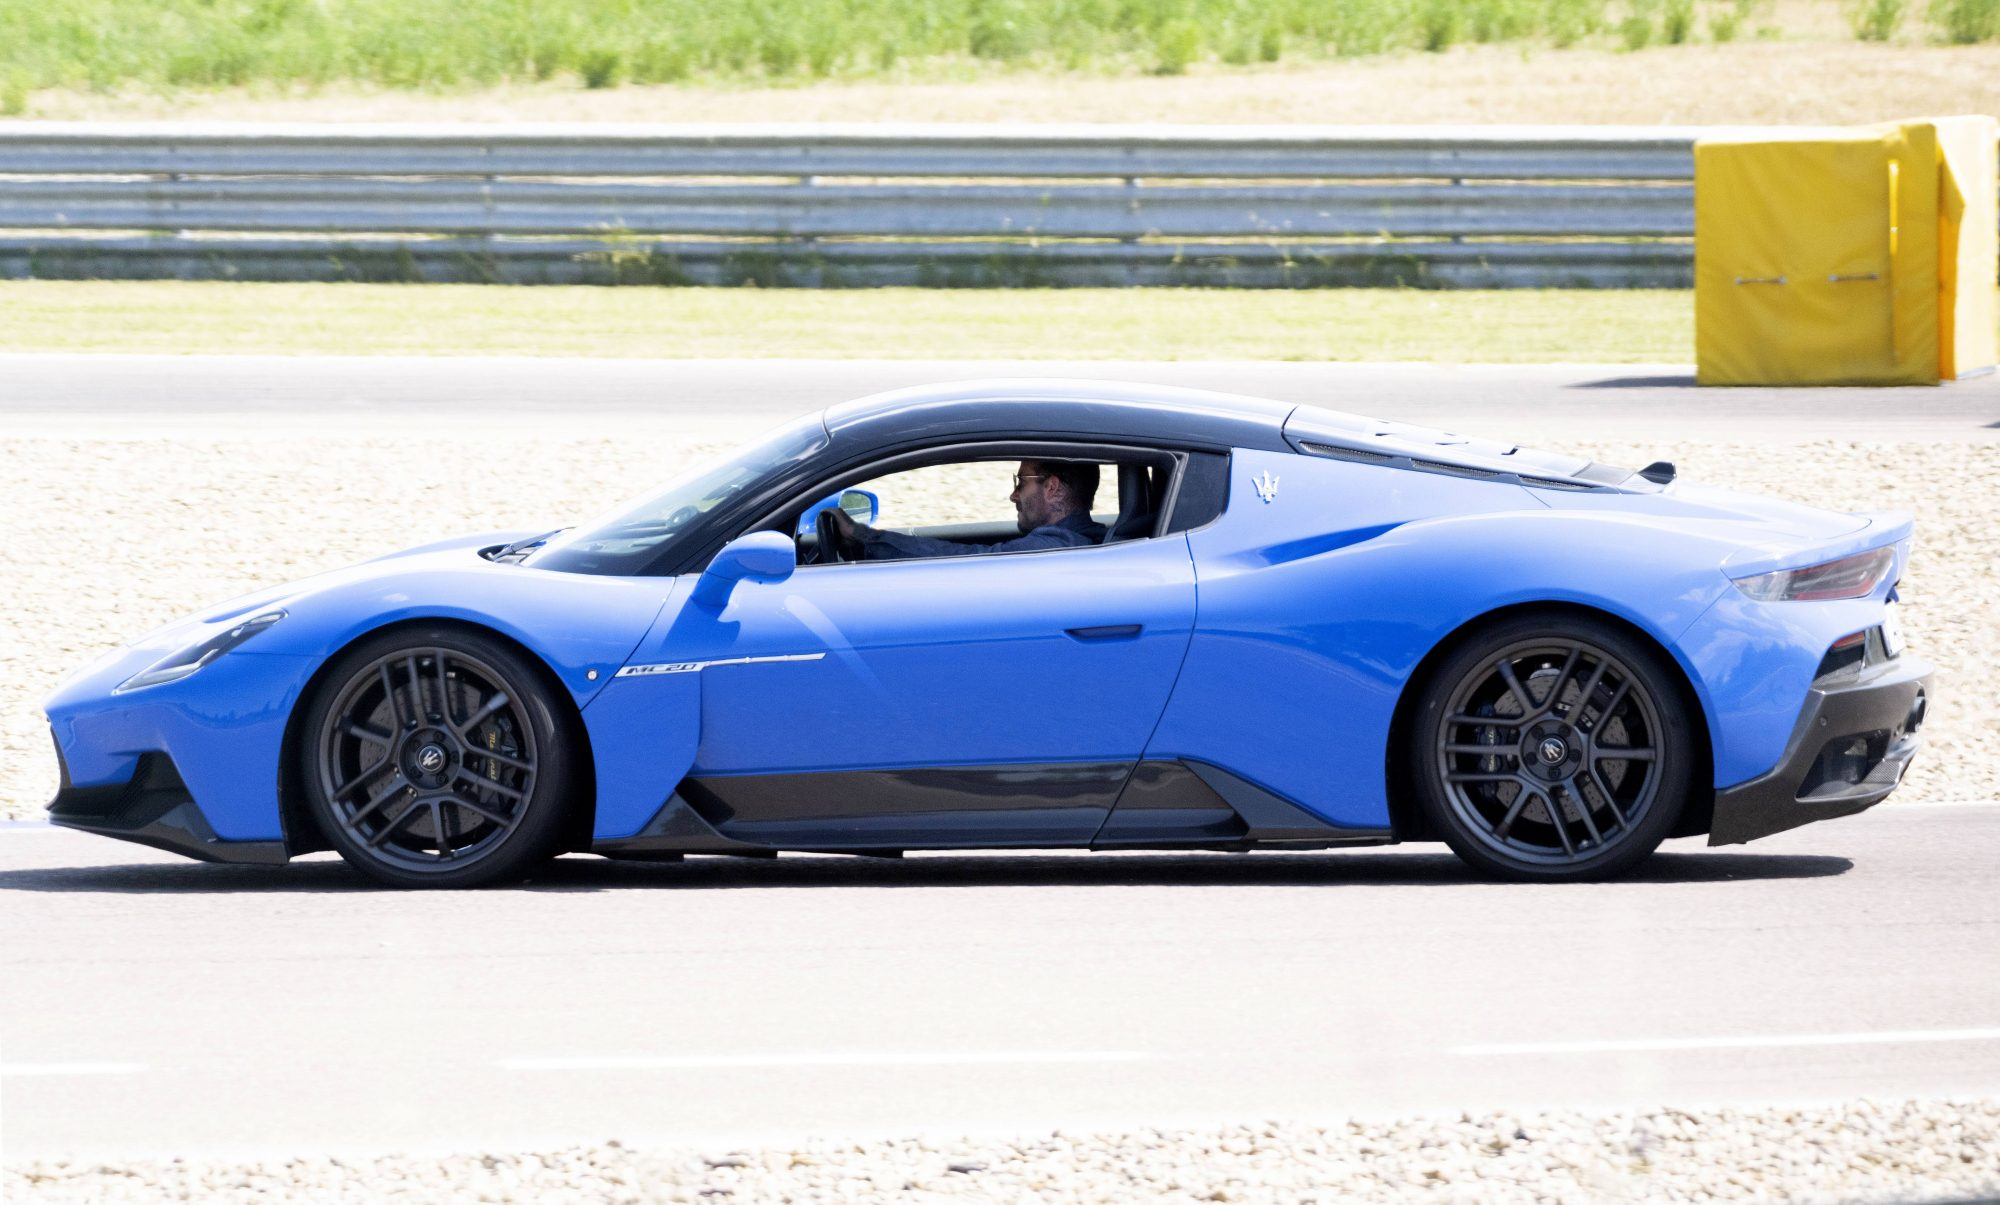 David Beckham Takes New Blue Maserati for a Spin at Modena Autodrome in Italy